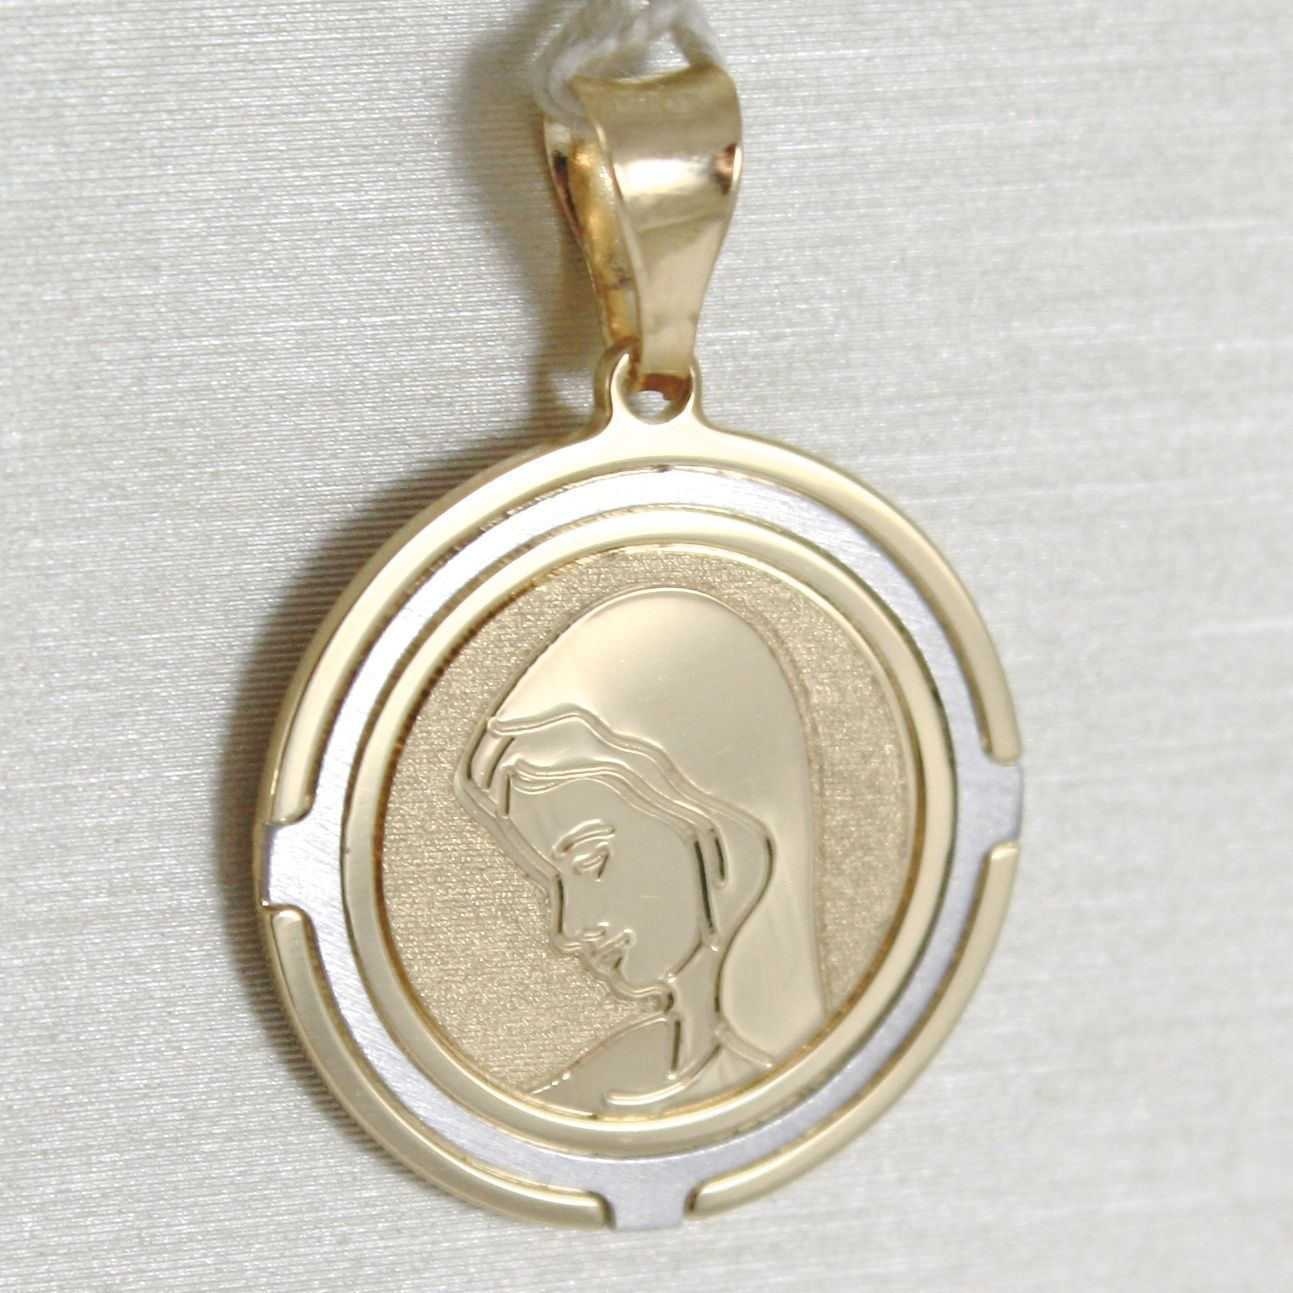 18K WHITE AND YELLOW GOLD MEDAL ROUND STYLIZED WITH  VIRGIN MARY  MADE IN ITALY